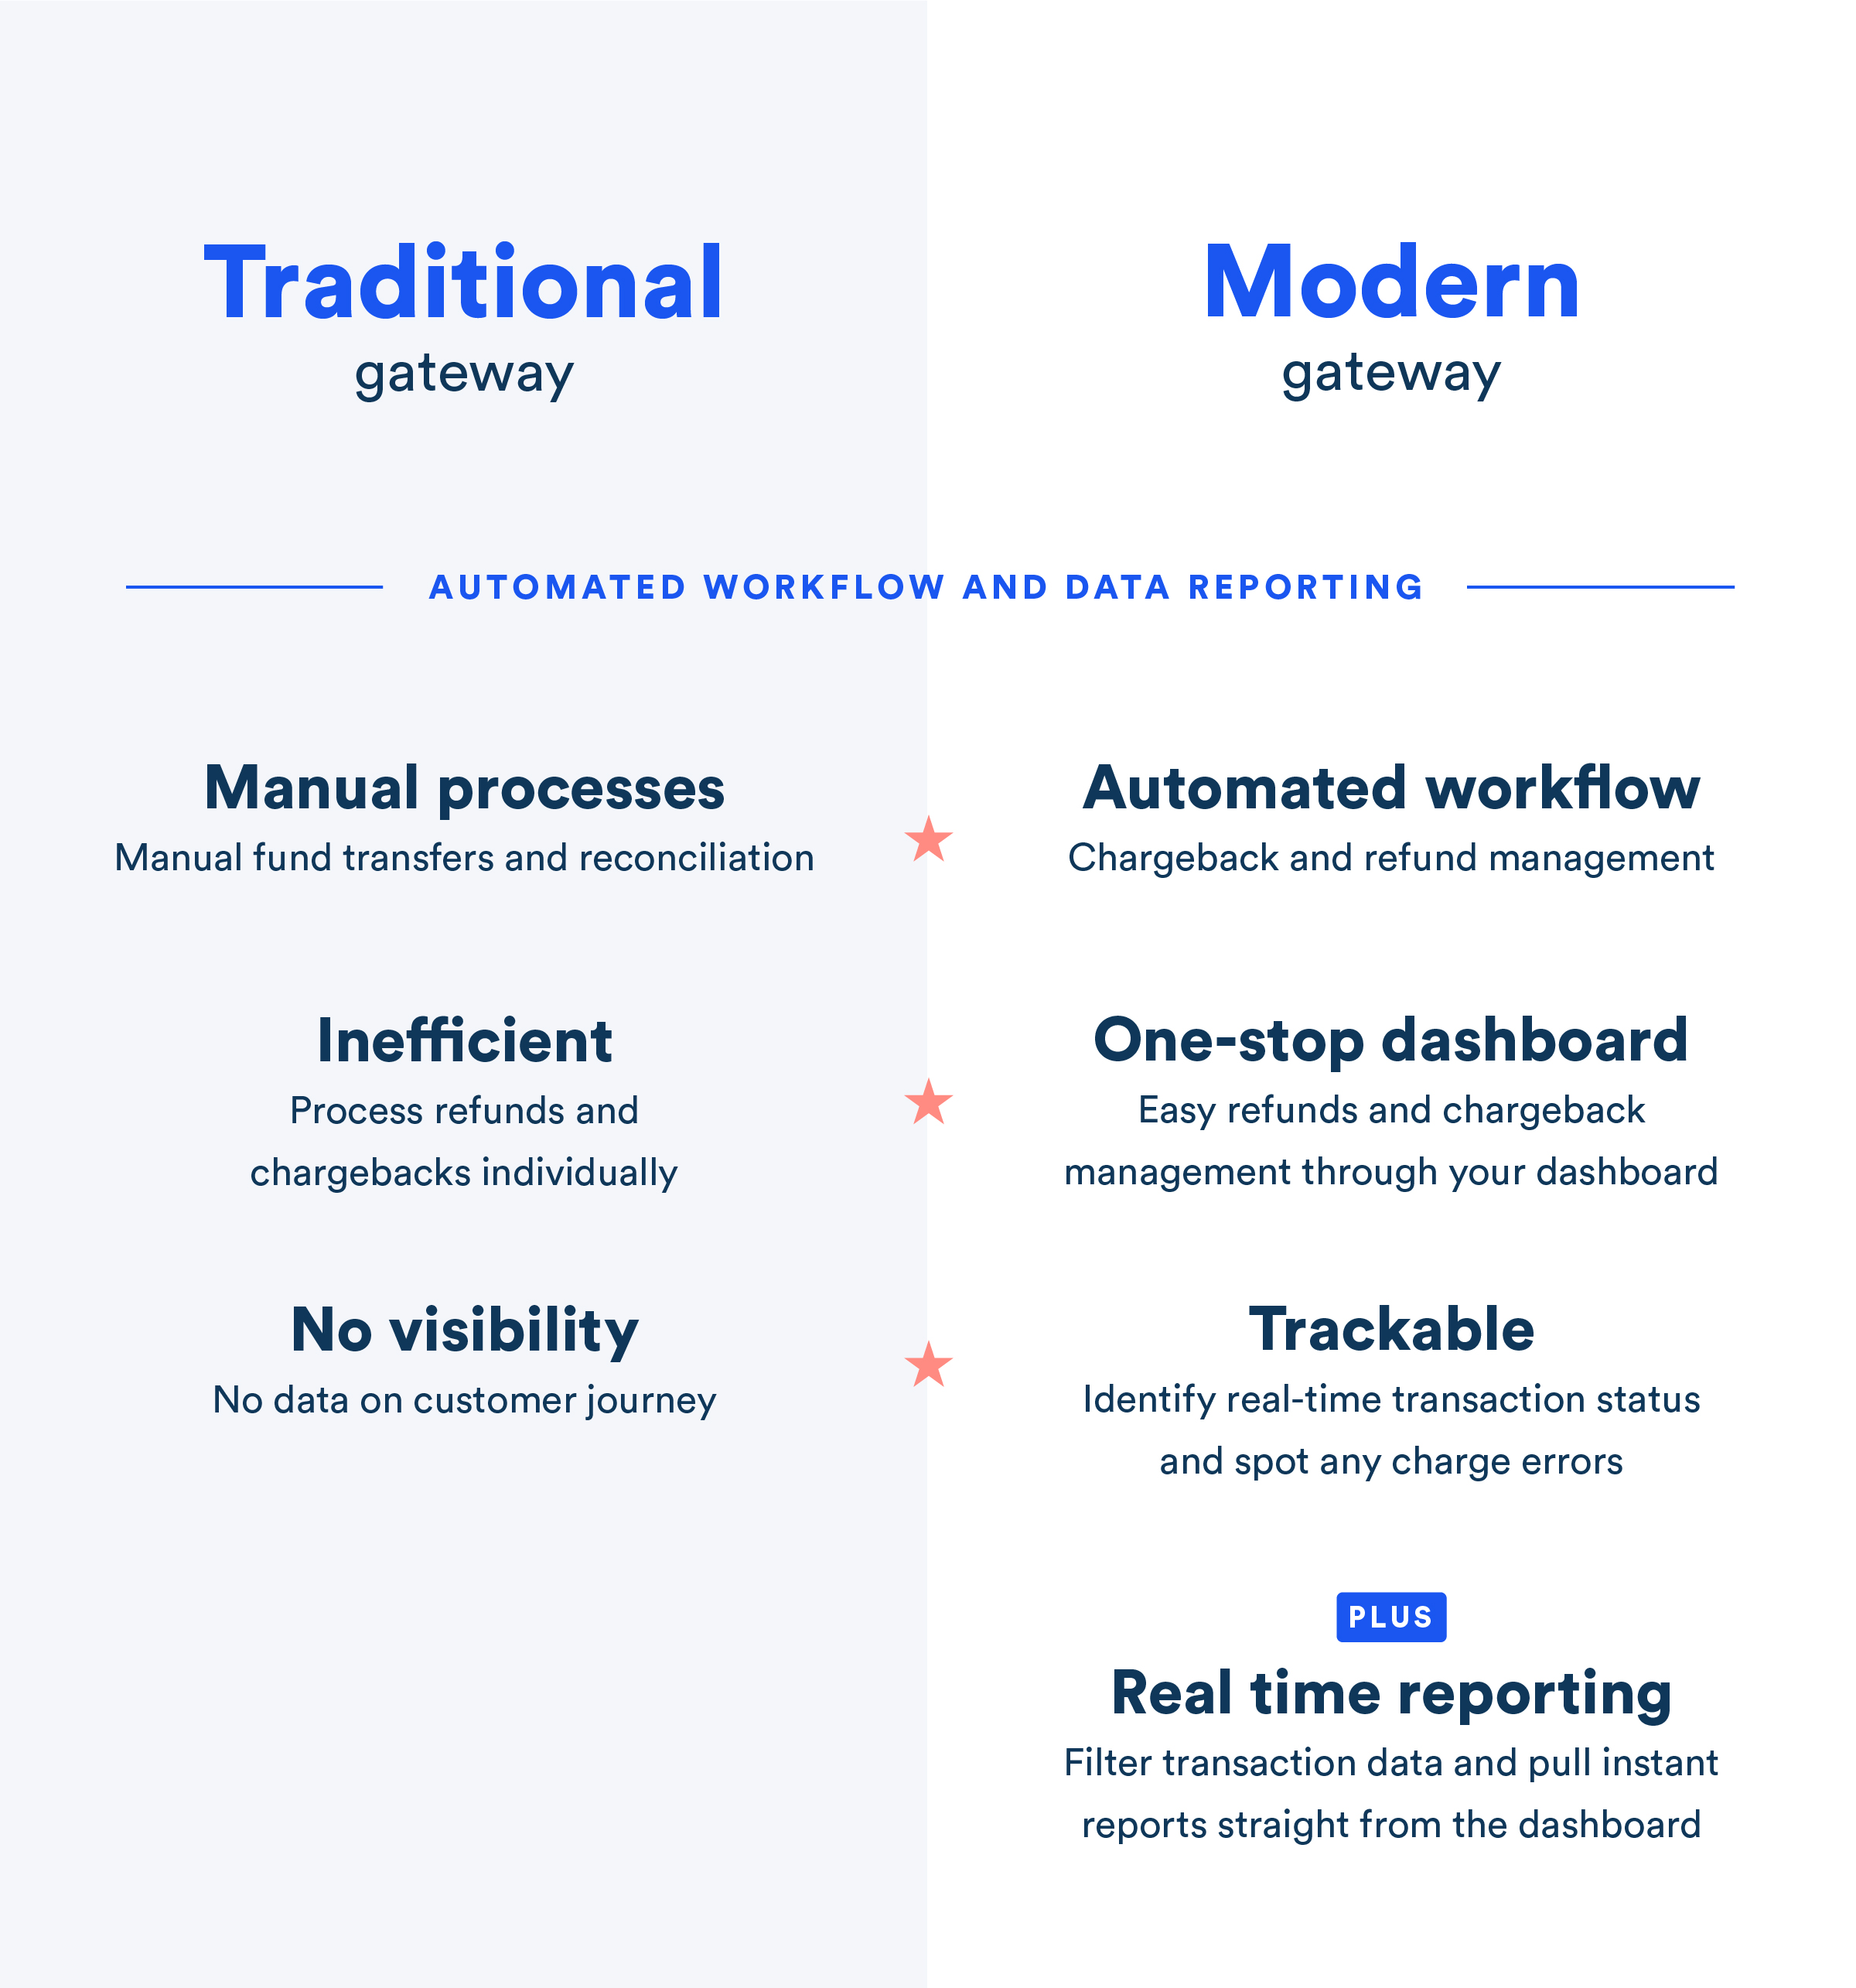 Automated workflow and data reporting